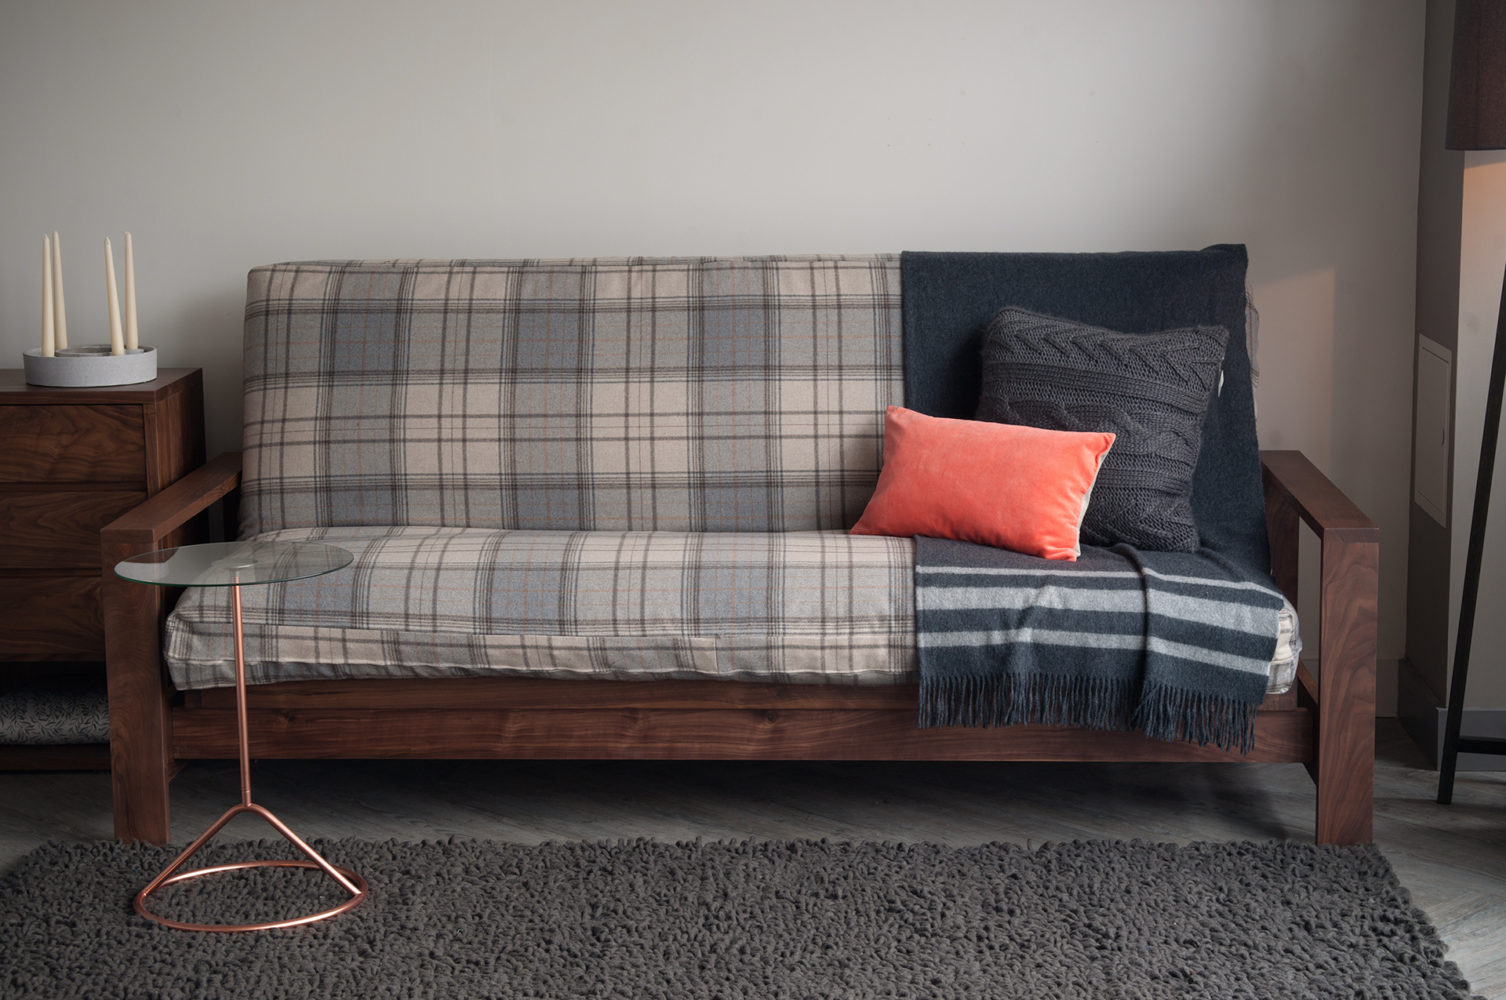 Black Lotus cuba sofa-bed with wool loose cover